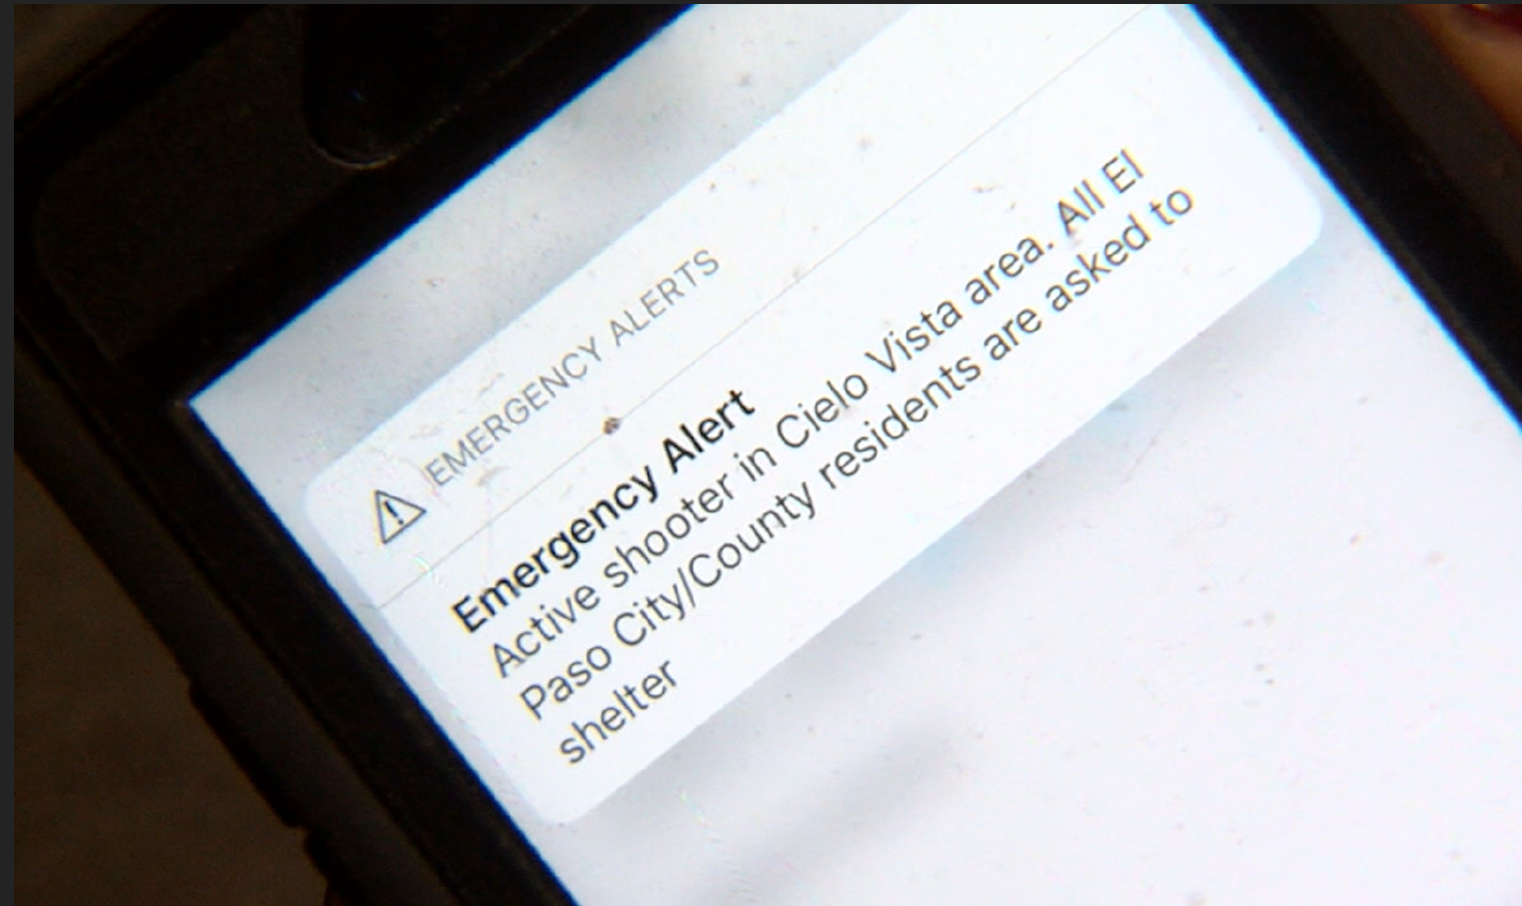 A screenshot of what cell phones across El Paso County received on August 3rd.